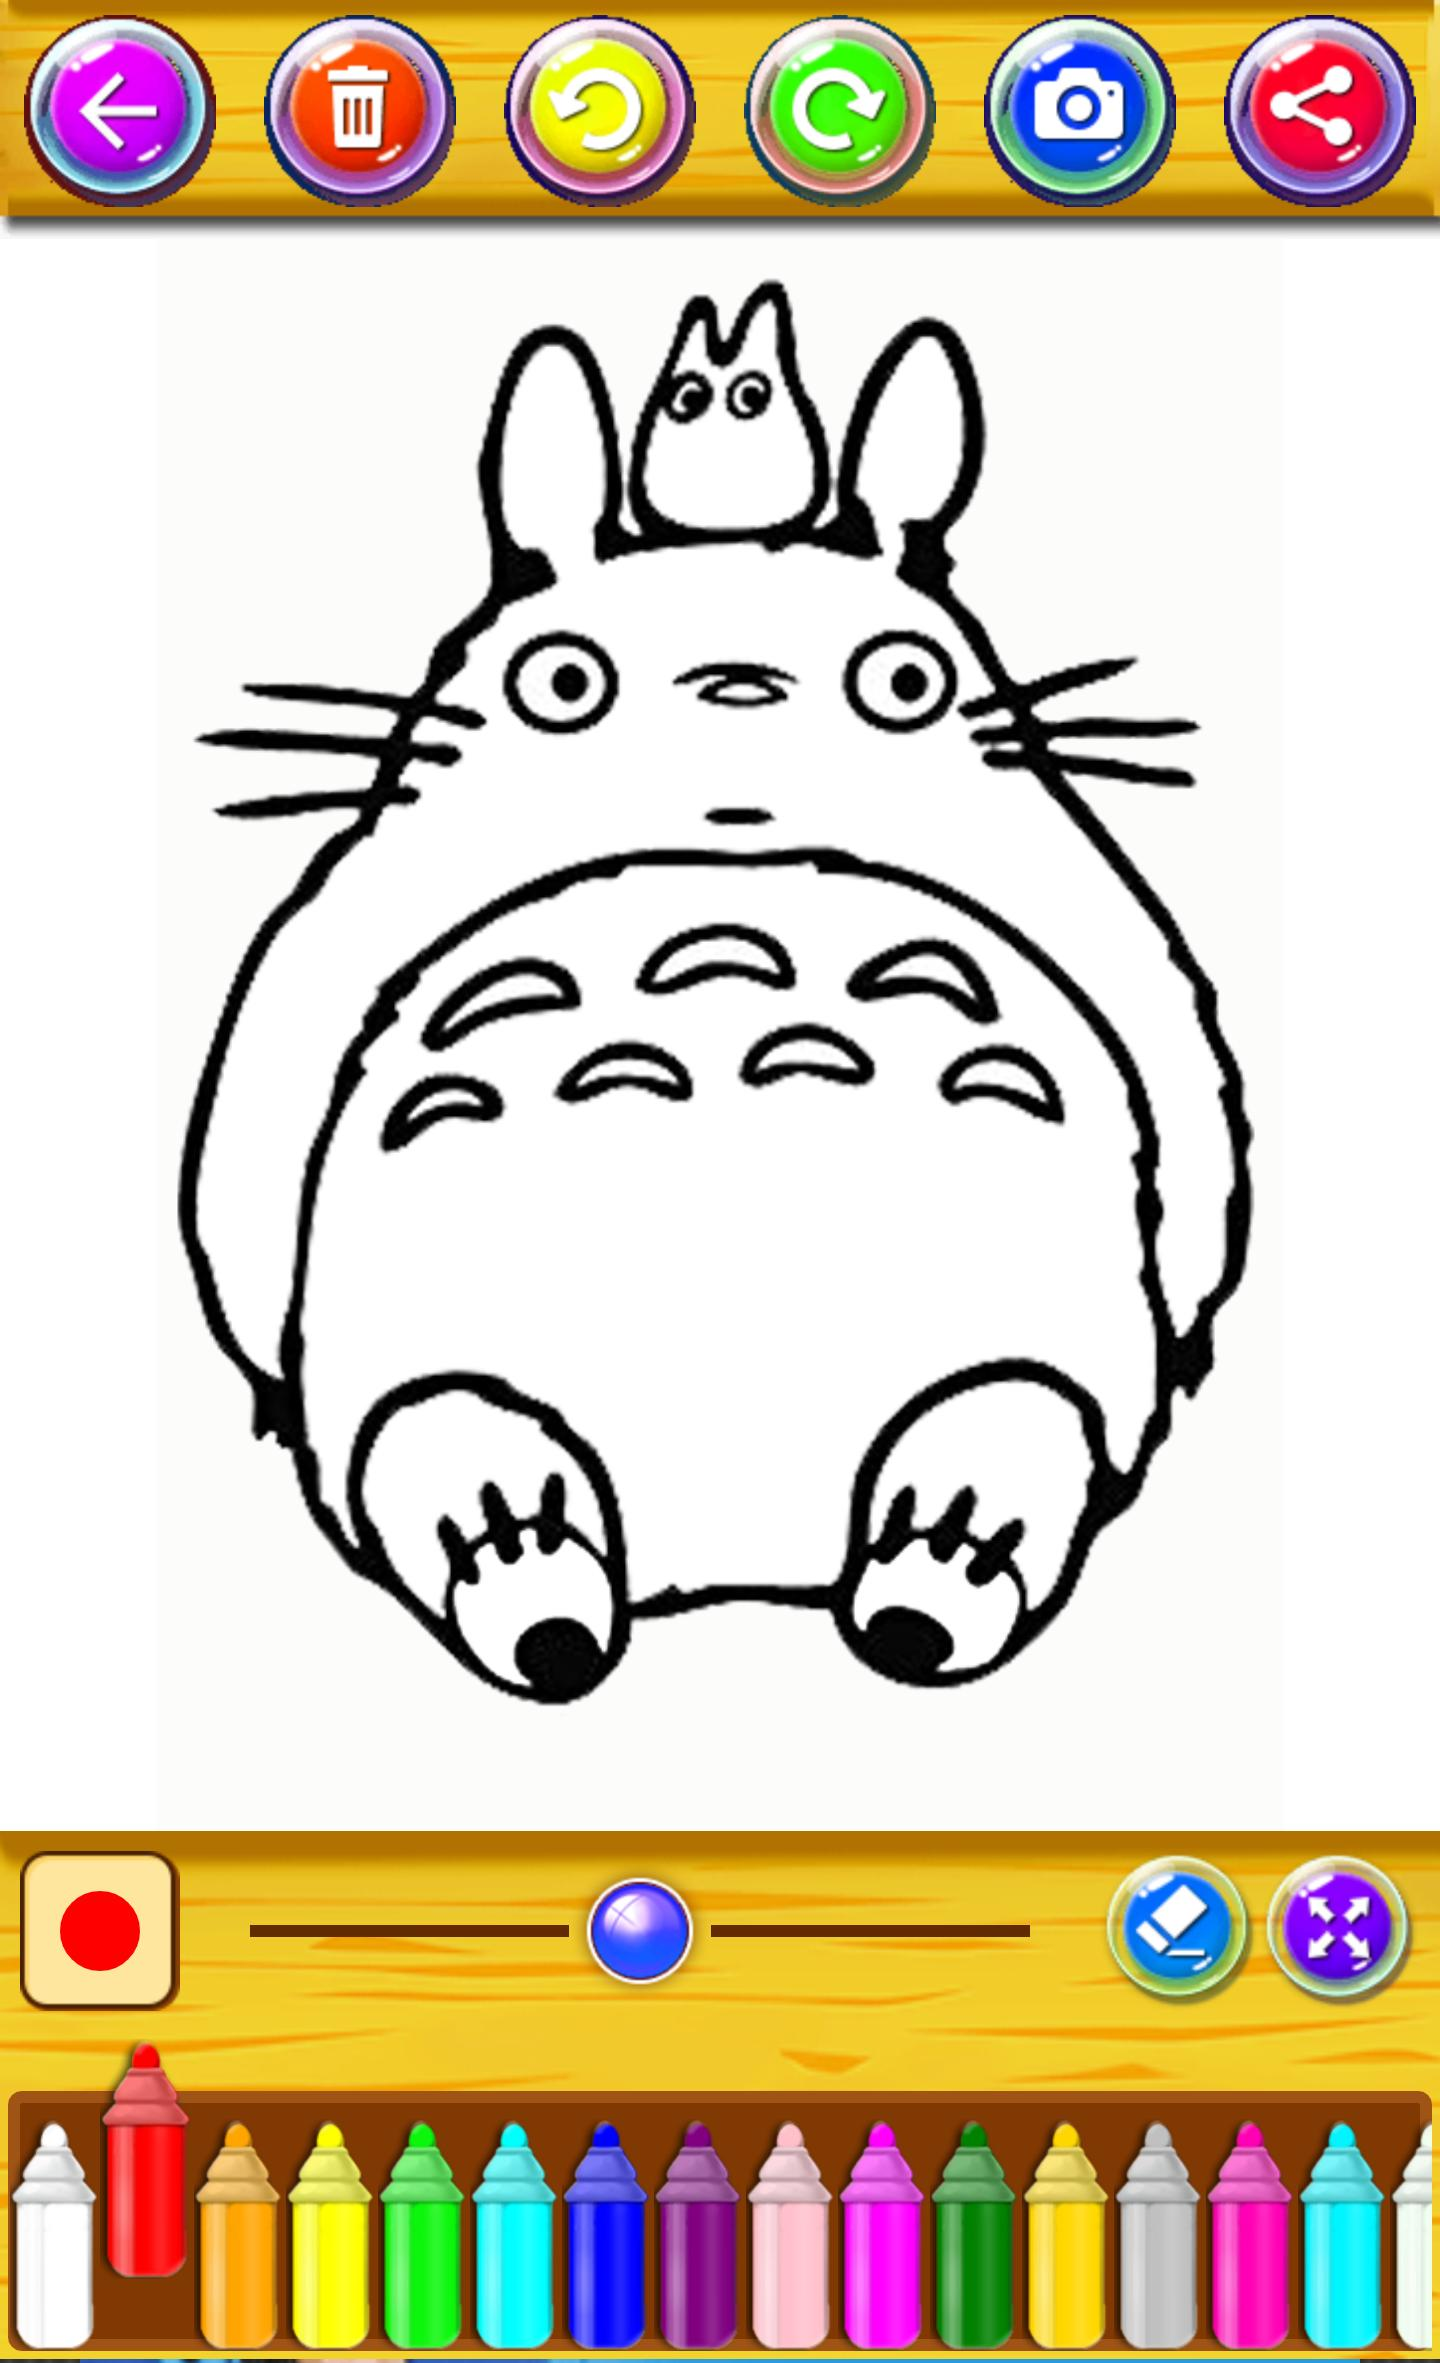 Coloring Totoro For Kids 2018 For Android APK Download